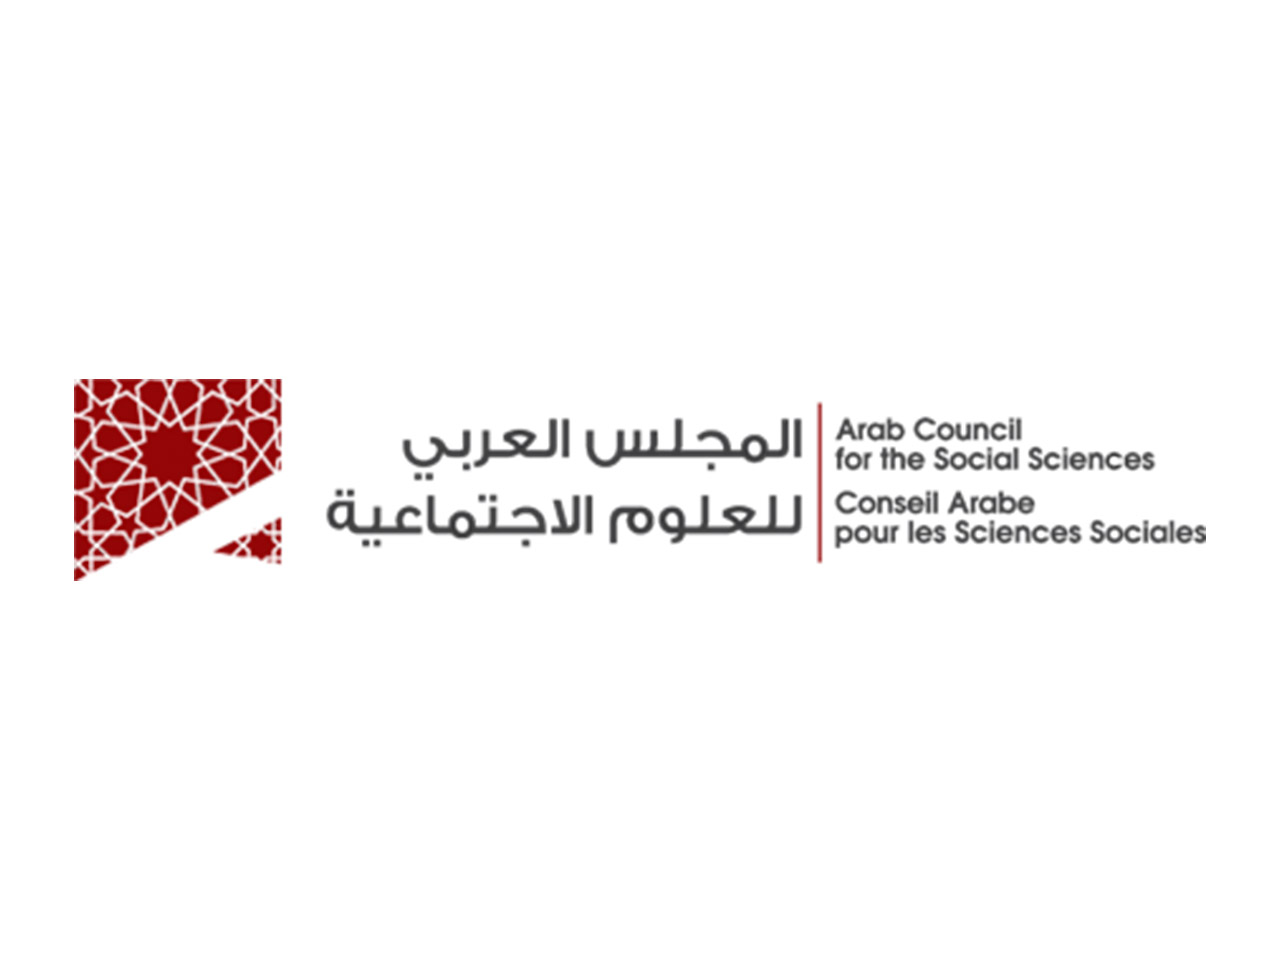 ACSS Small grant program - Deadline: 20th of August